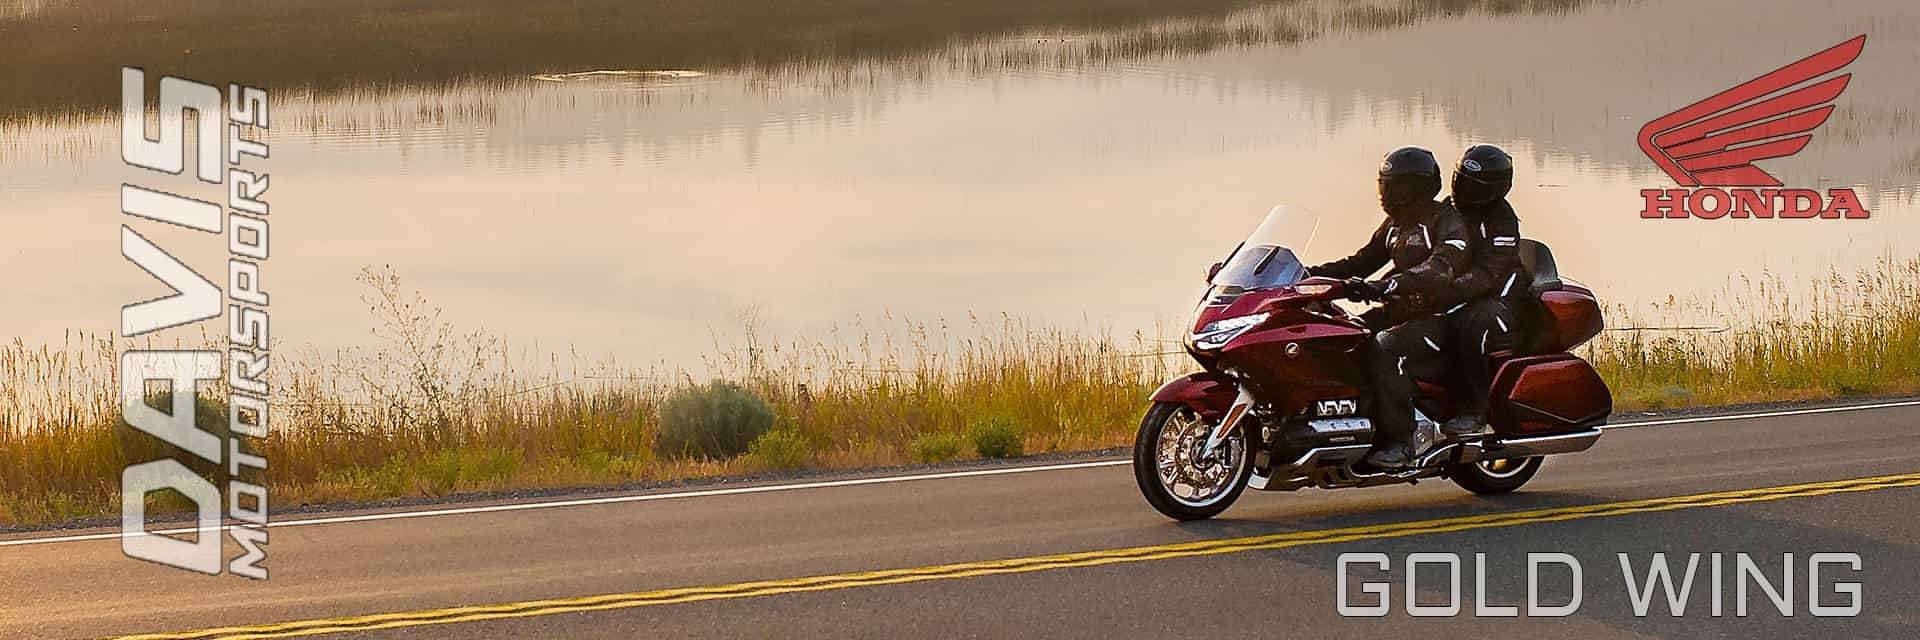 Honda Goldwings are available at Davis Motorsports of Delano | Delano, MN